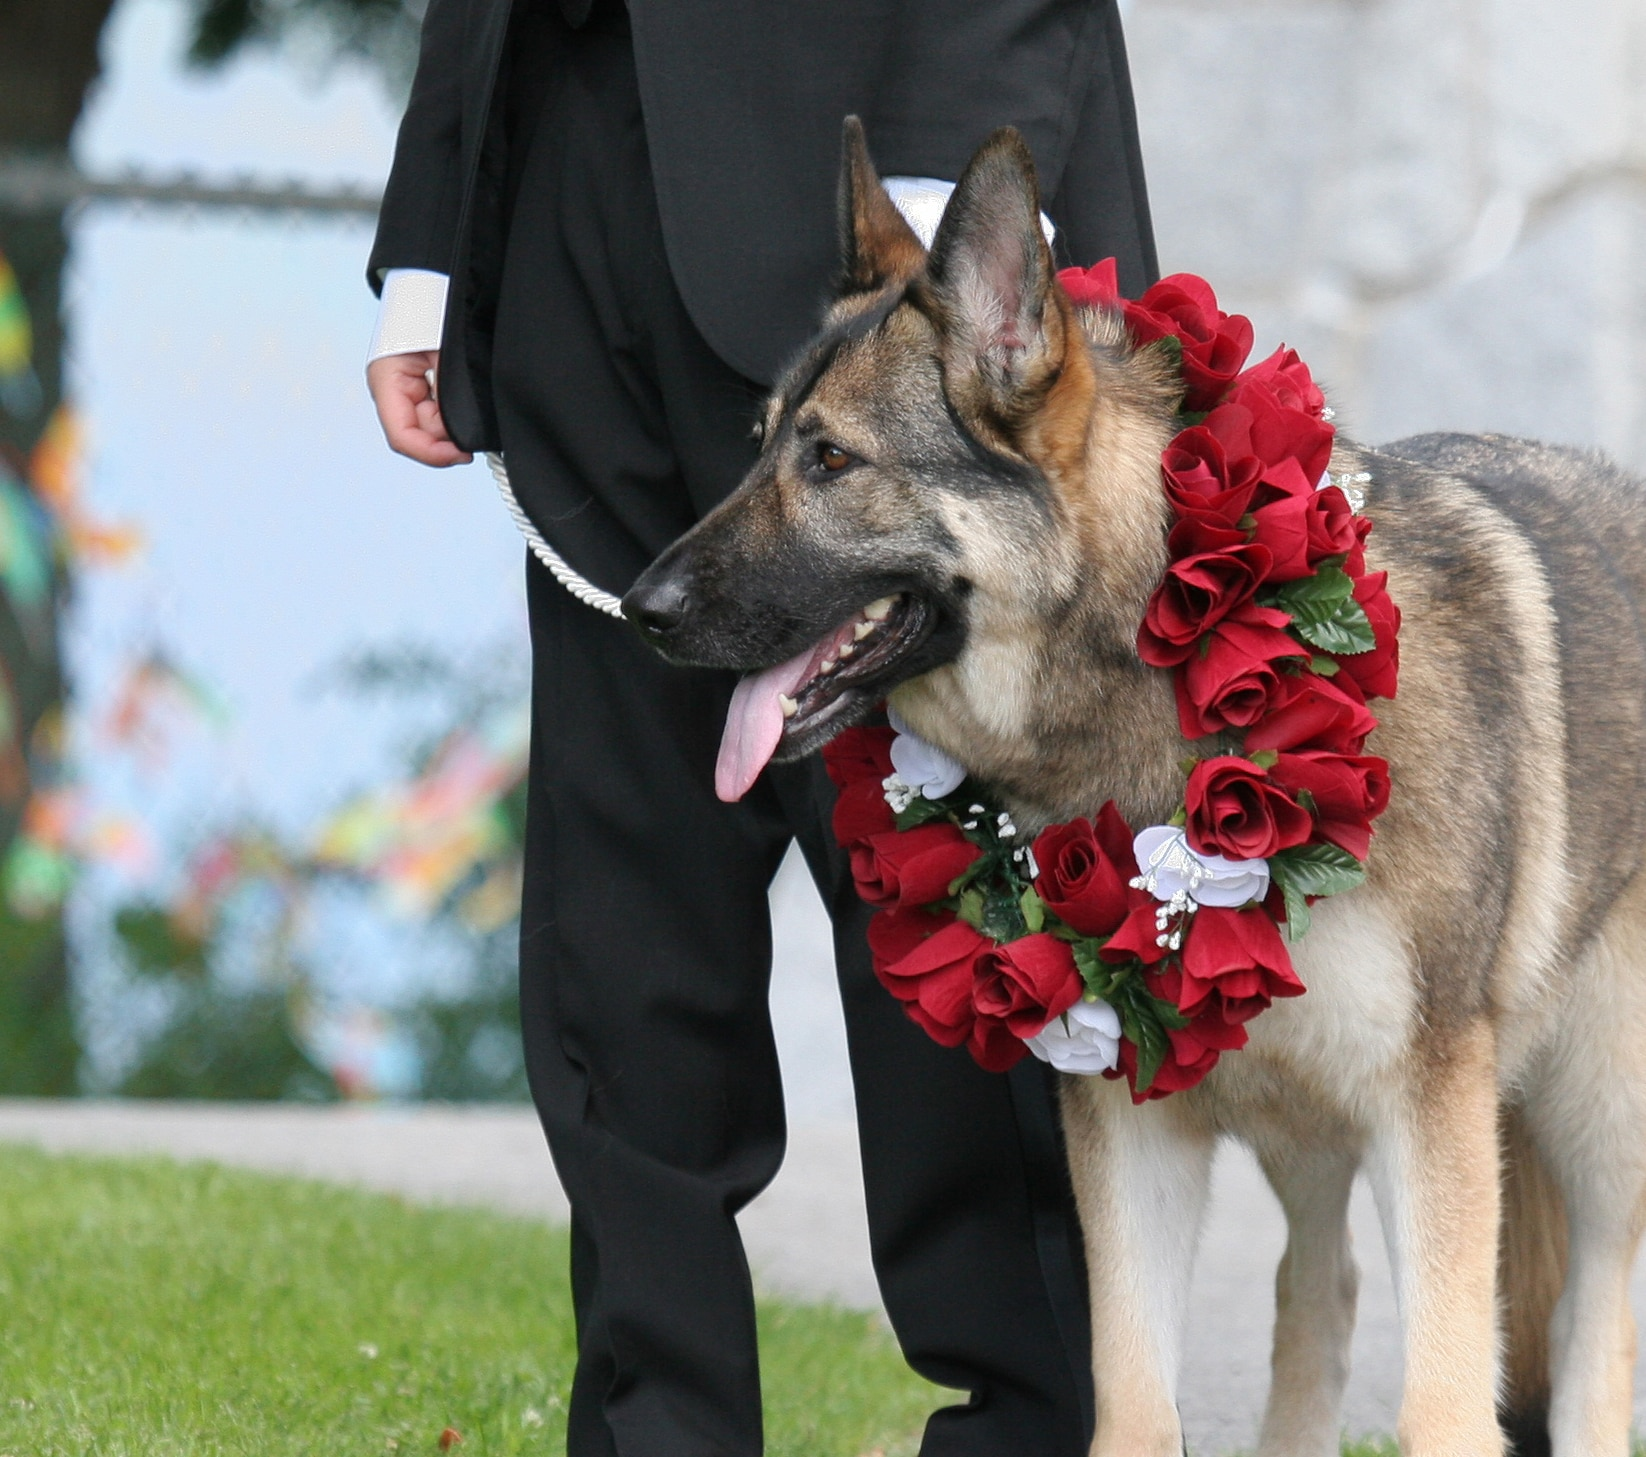 German shepherd with wreath around neck sits next to man.